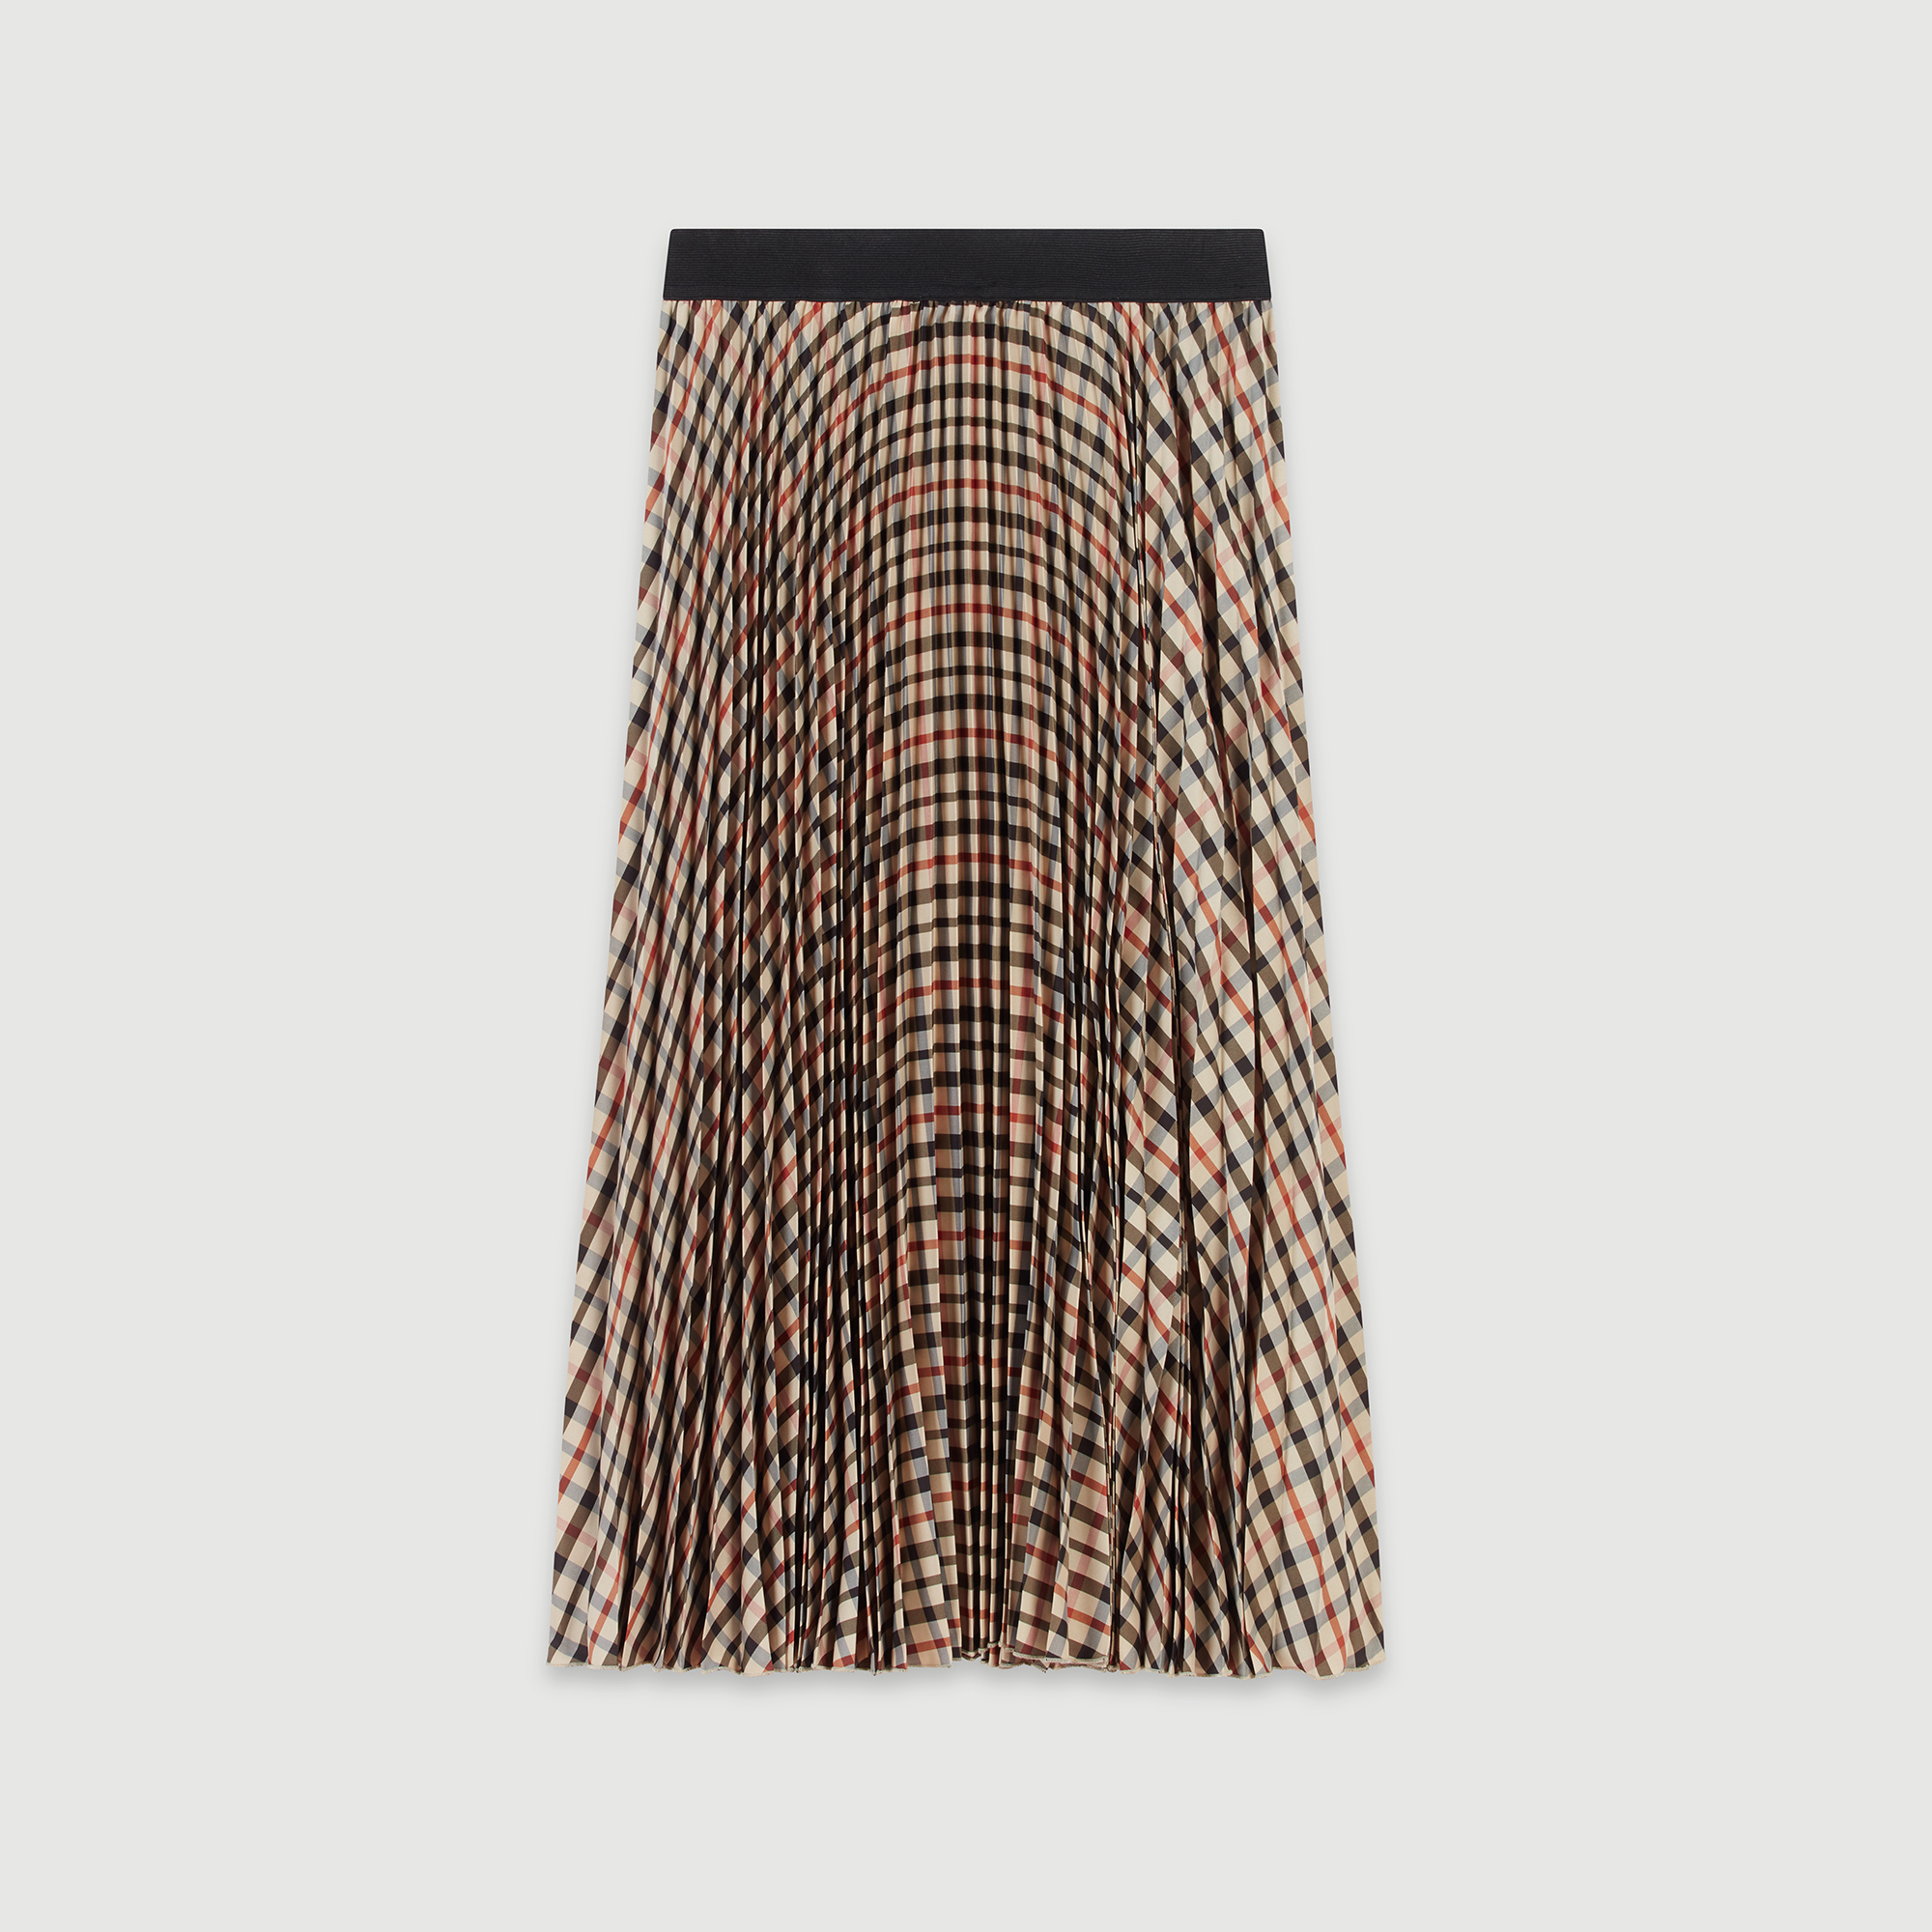 Elasticated Pleated Plaid Skirt - Brown